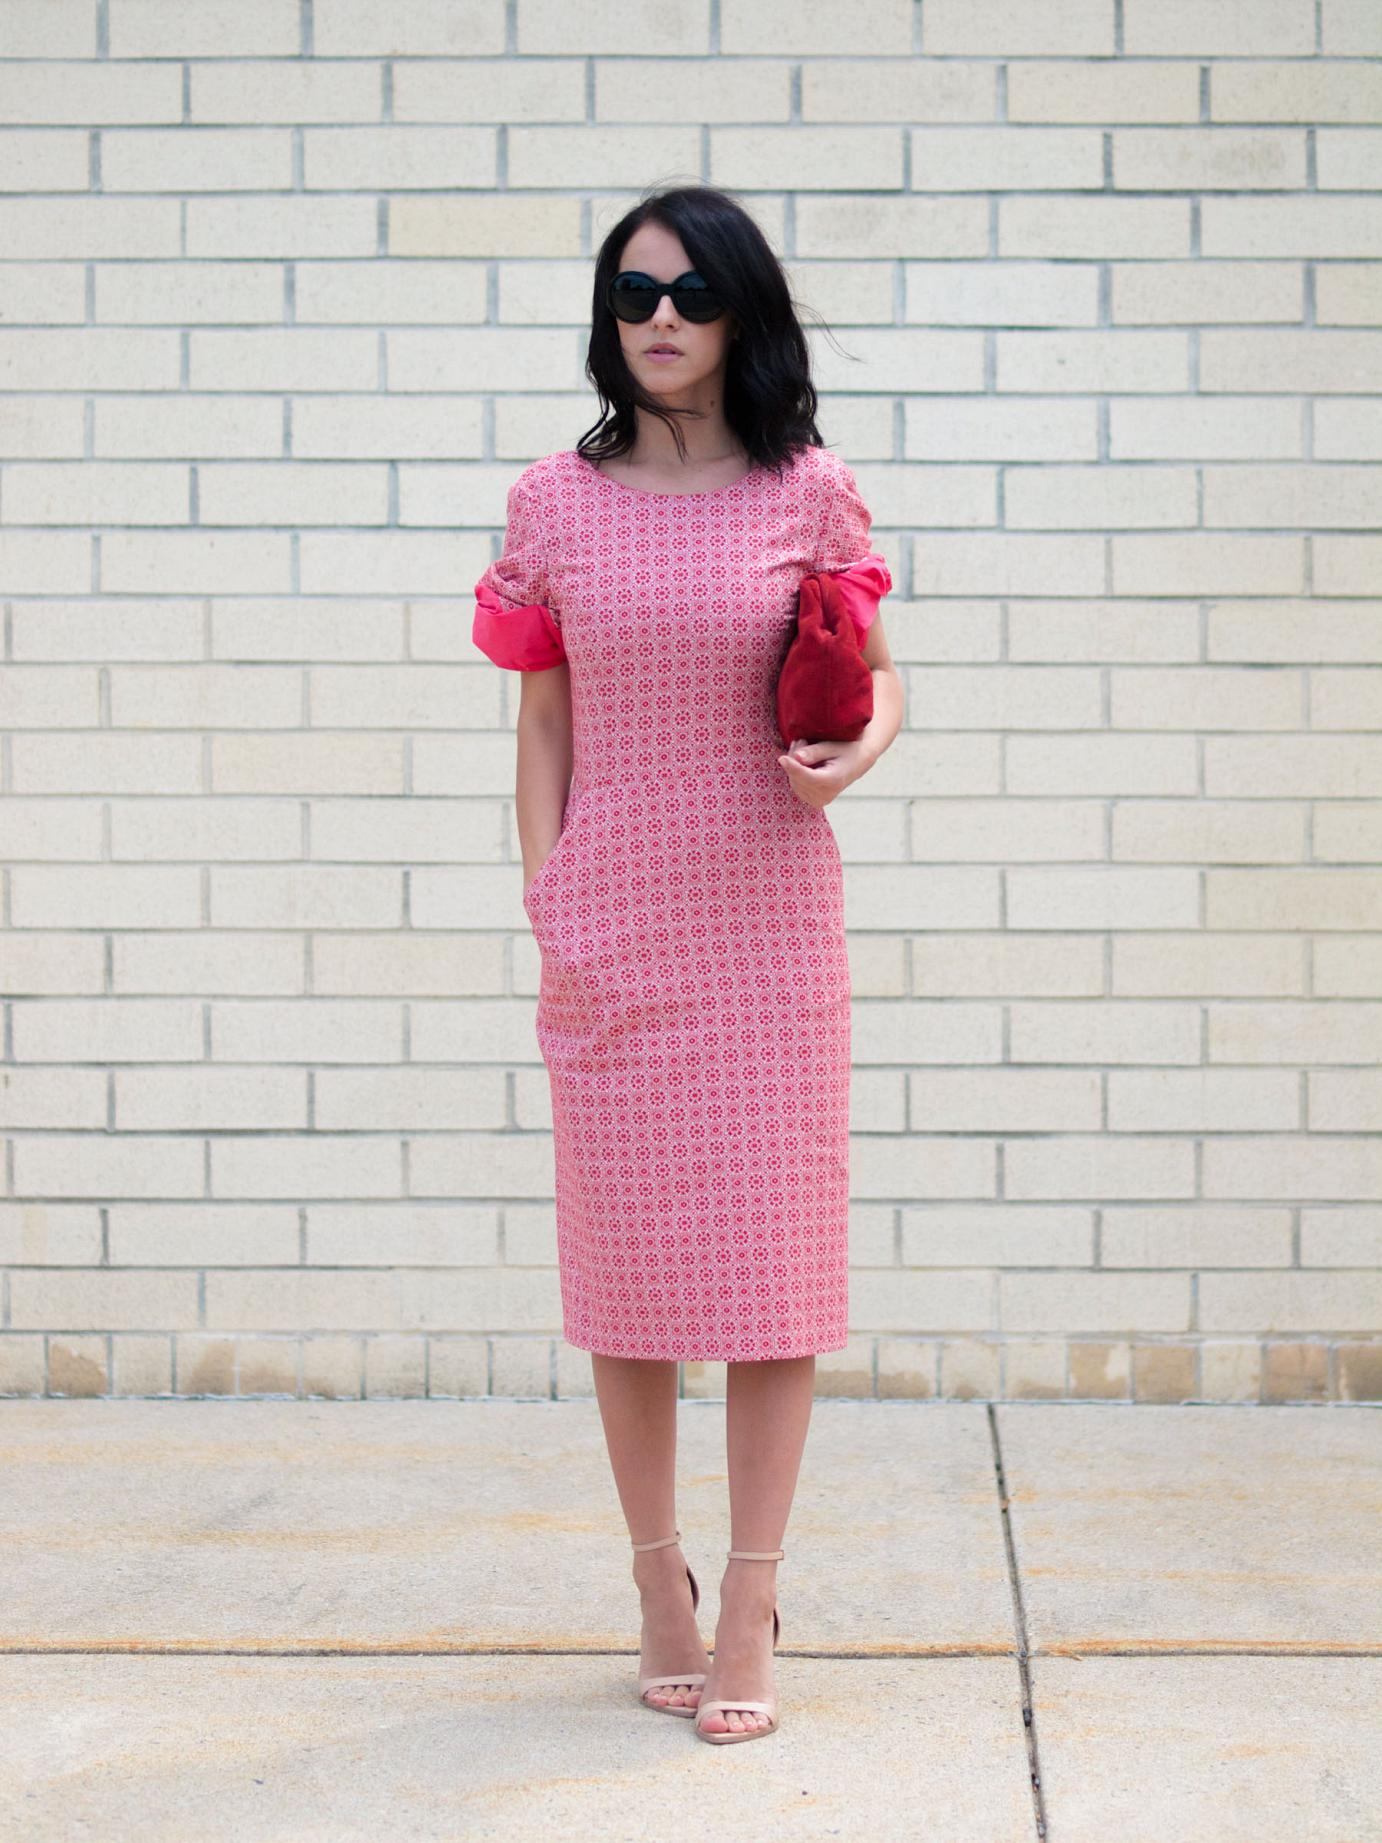 bittersweet colours, tia cibani dress, Tia Cibani, printed dress, prints, zara sandals, nude sandals, vintage clutch, summer dress, street style